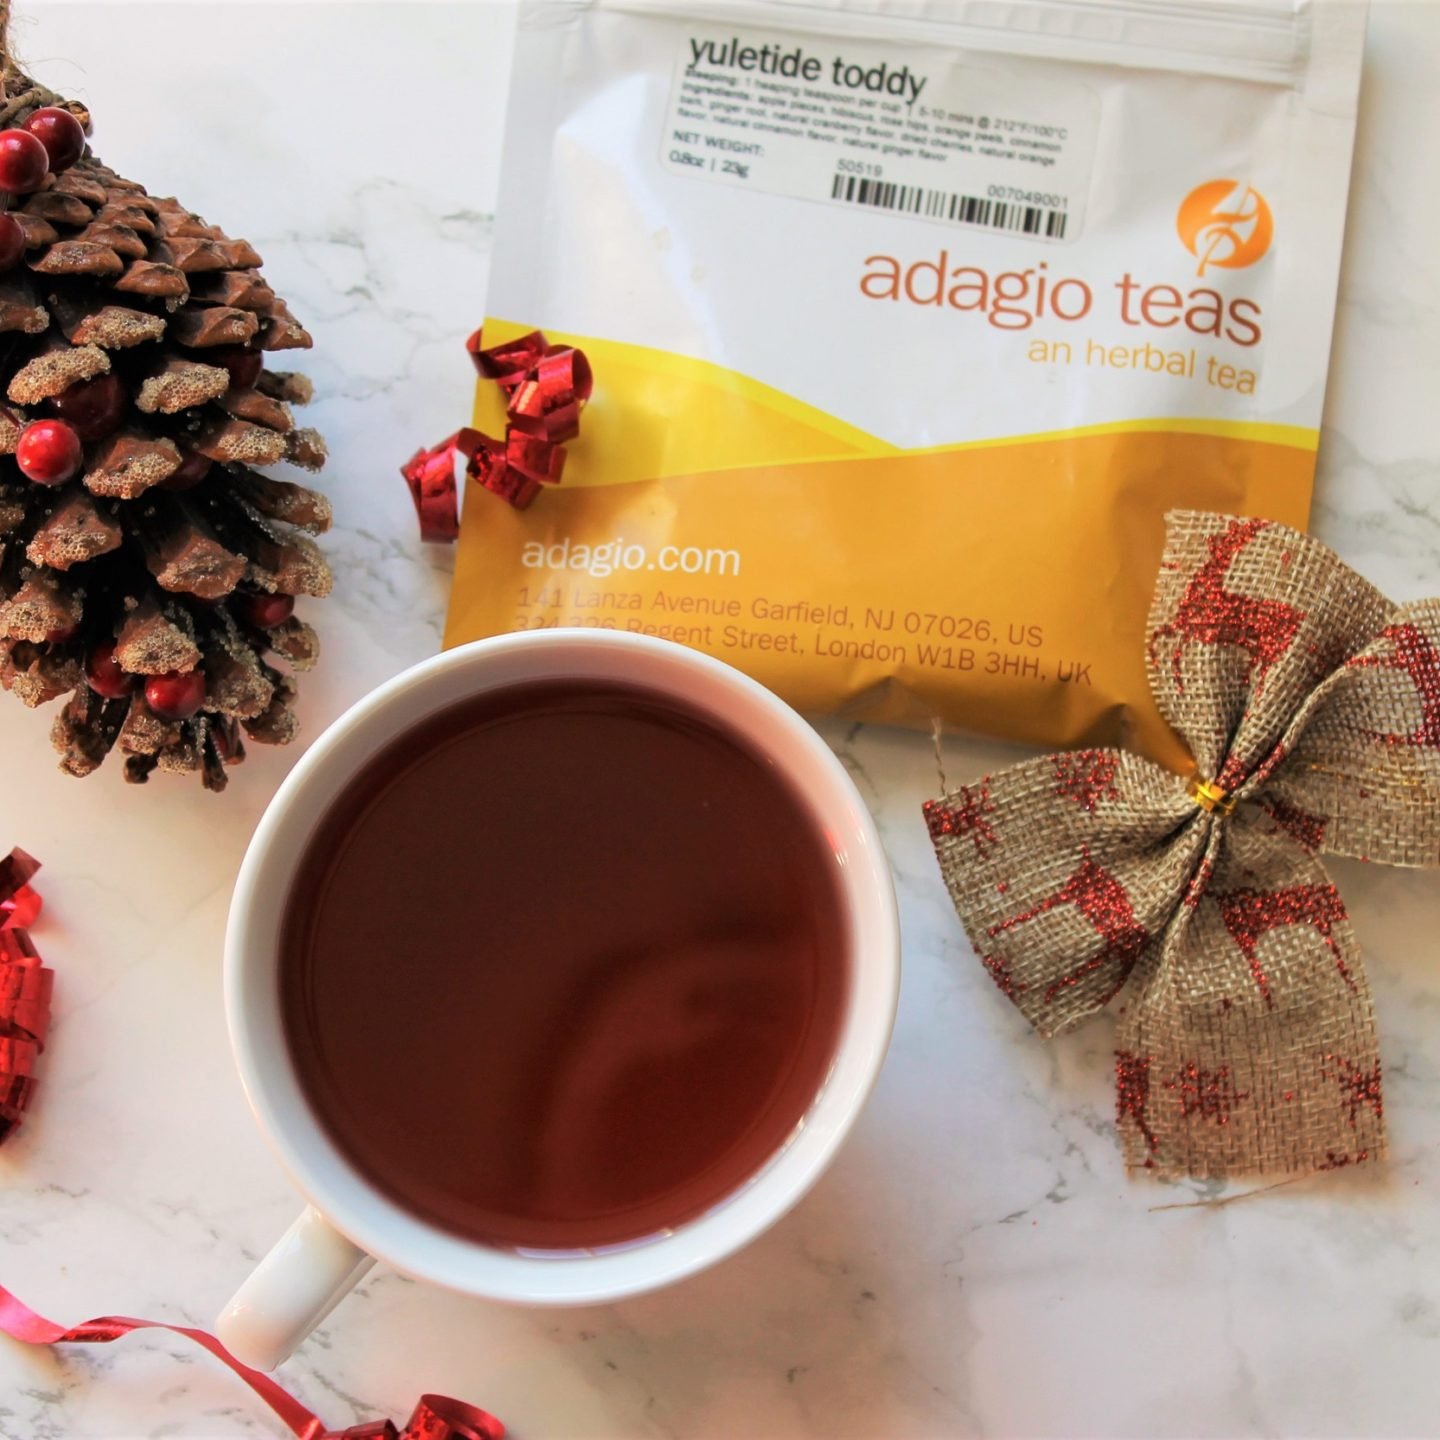 Adagio Yuletide Toddy Tea Review